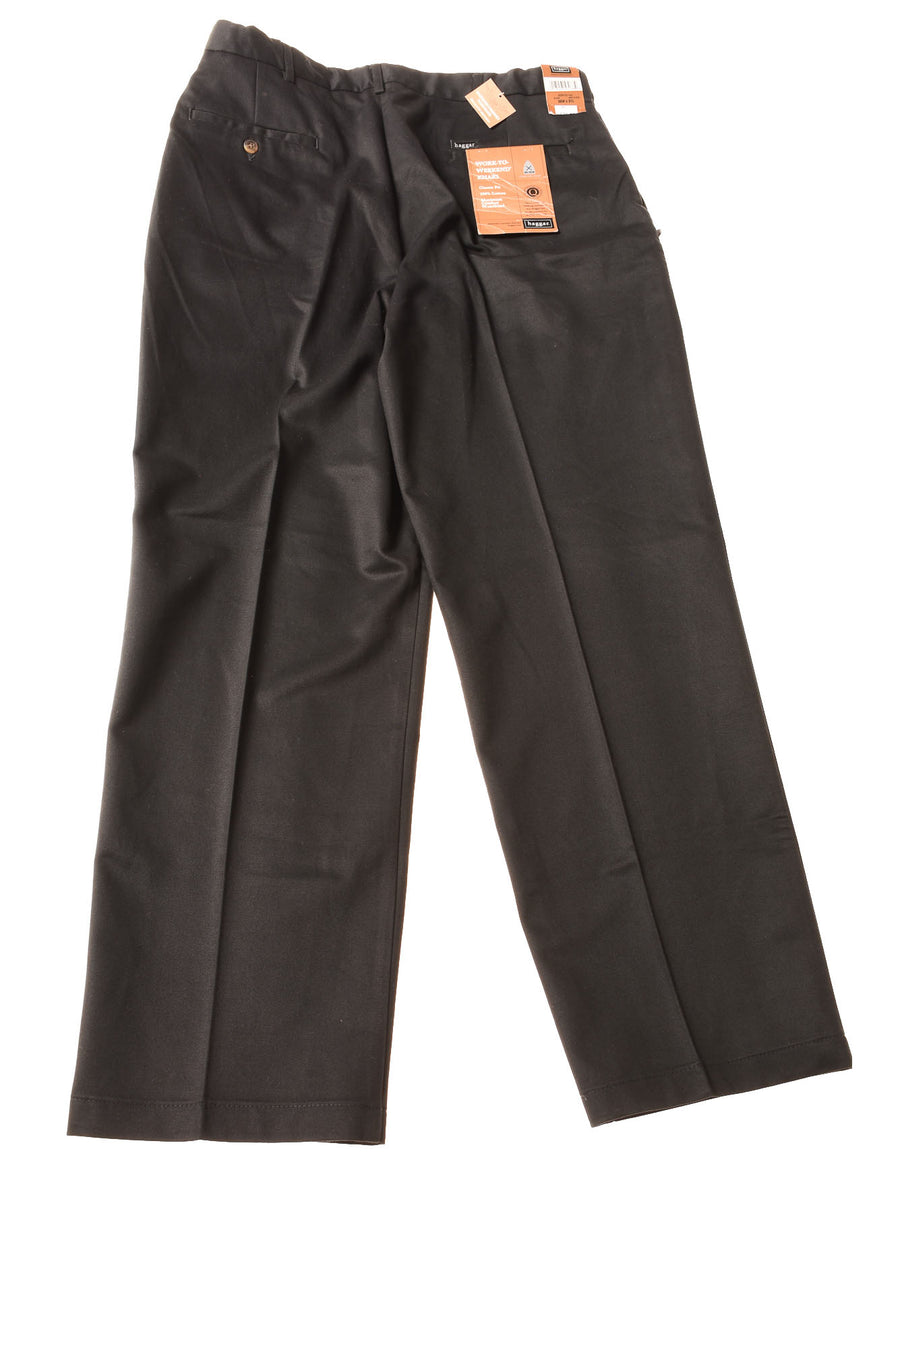 NEW Haggar Men's Slacks 36x31 Black